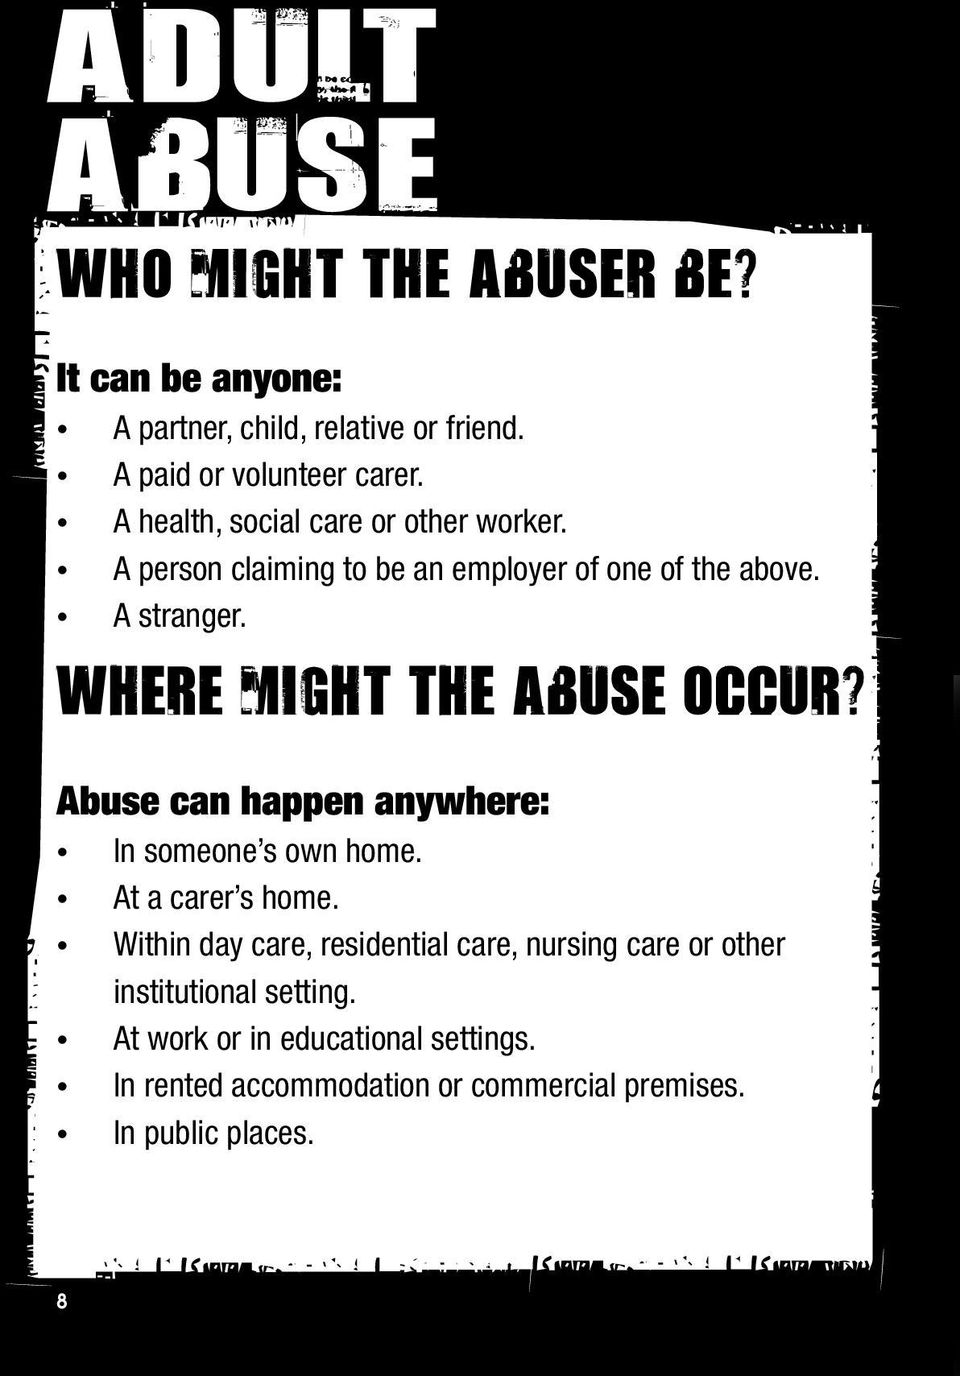 Abuse can happen anywhere: In someone s own home. At a carer s home.